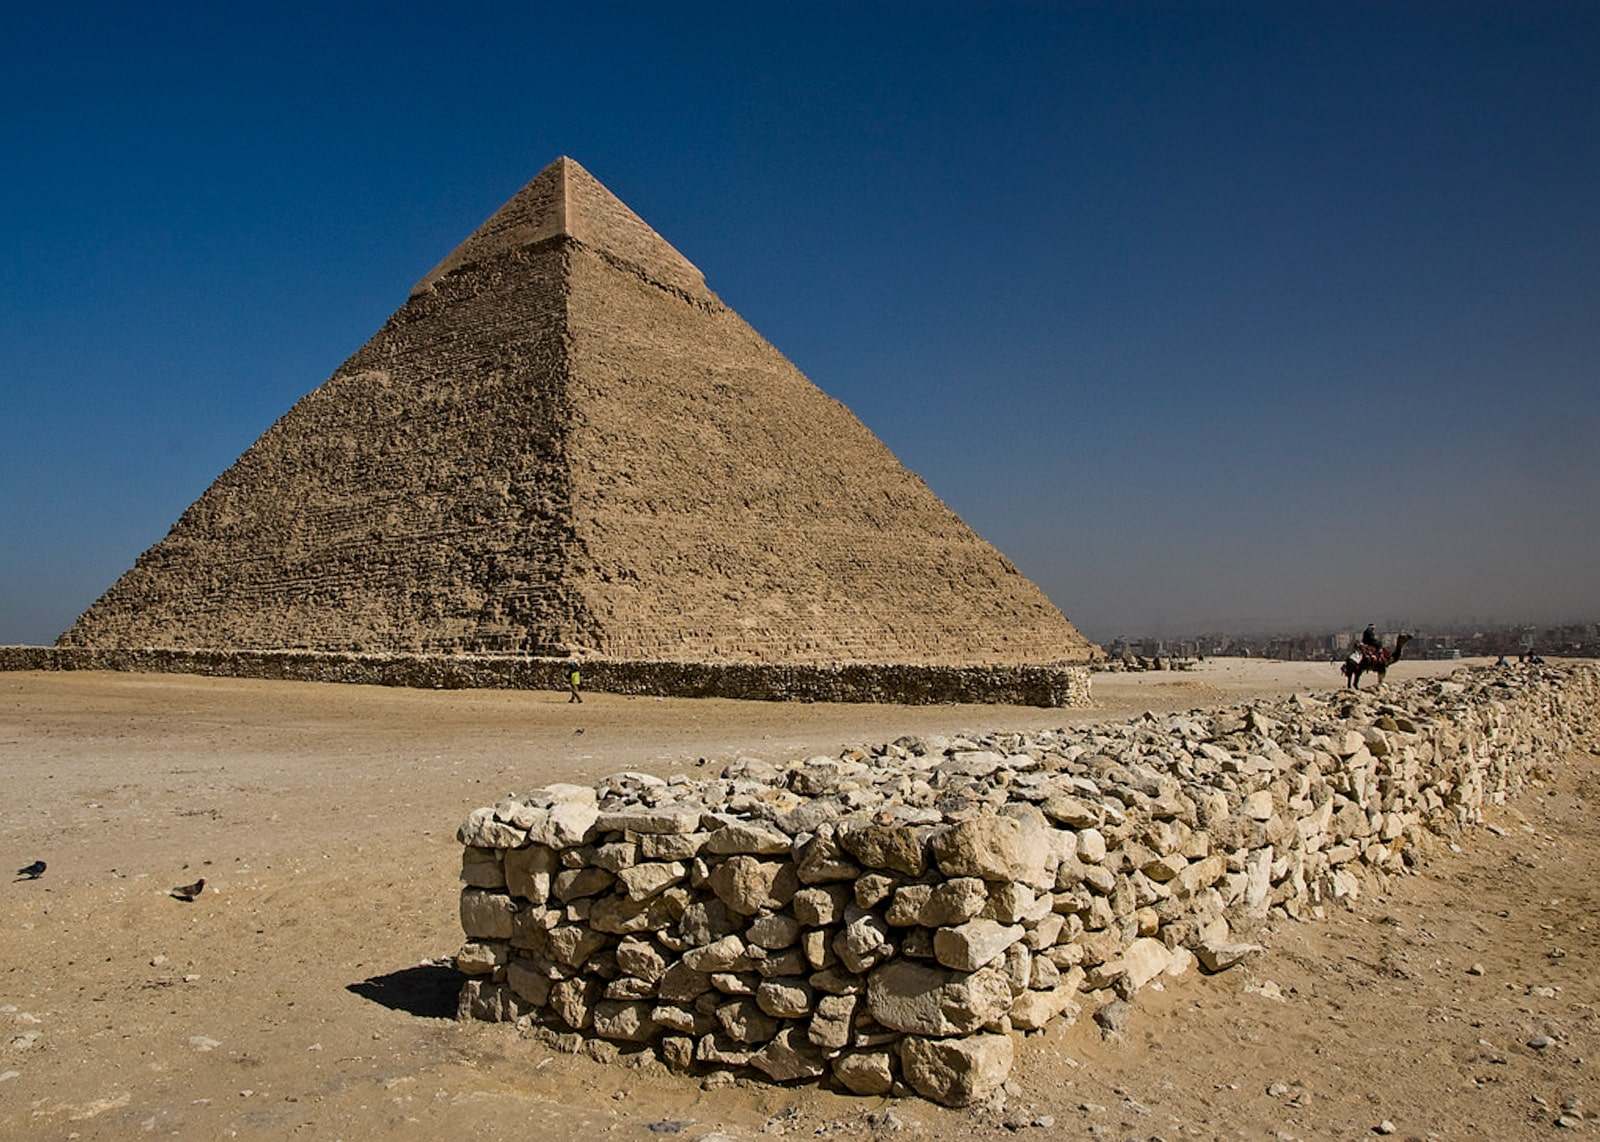 The Great Pyramid in Giza. Photo by Keith Yahl of Flickr.